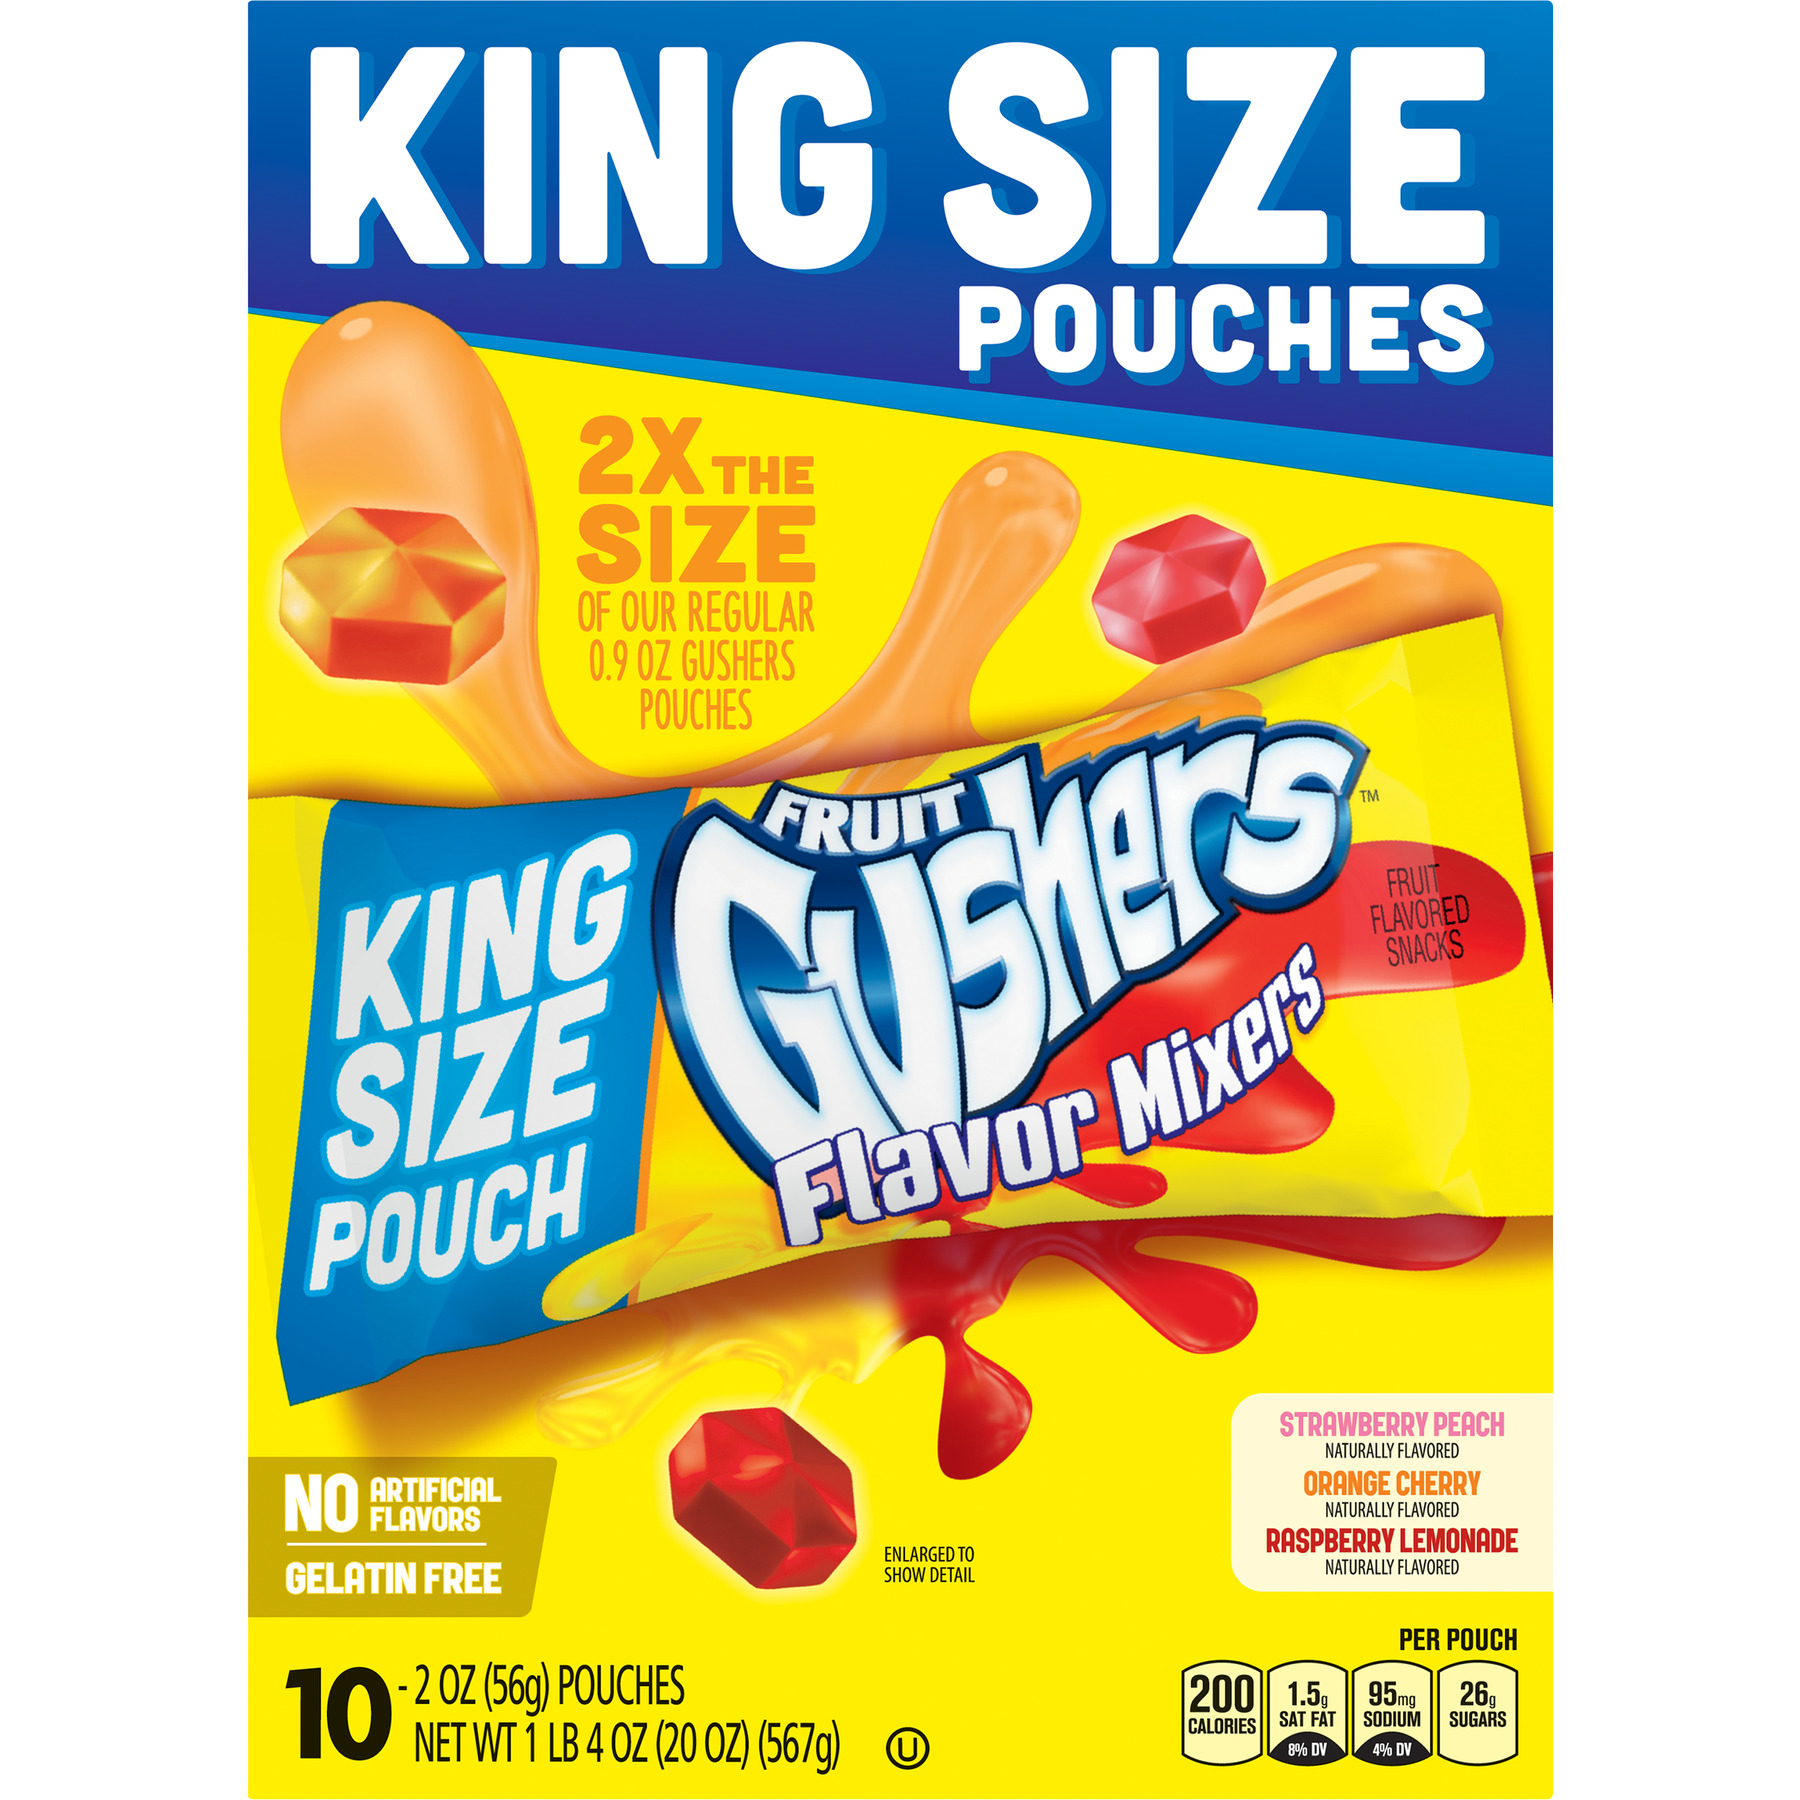 Betty Crocker Fruit Gushers Flavored Mixers Pouches, 2 Oz., 10 Count